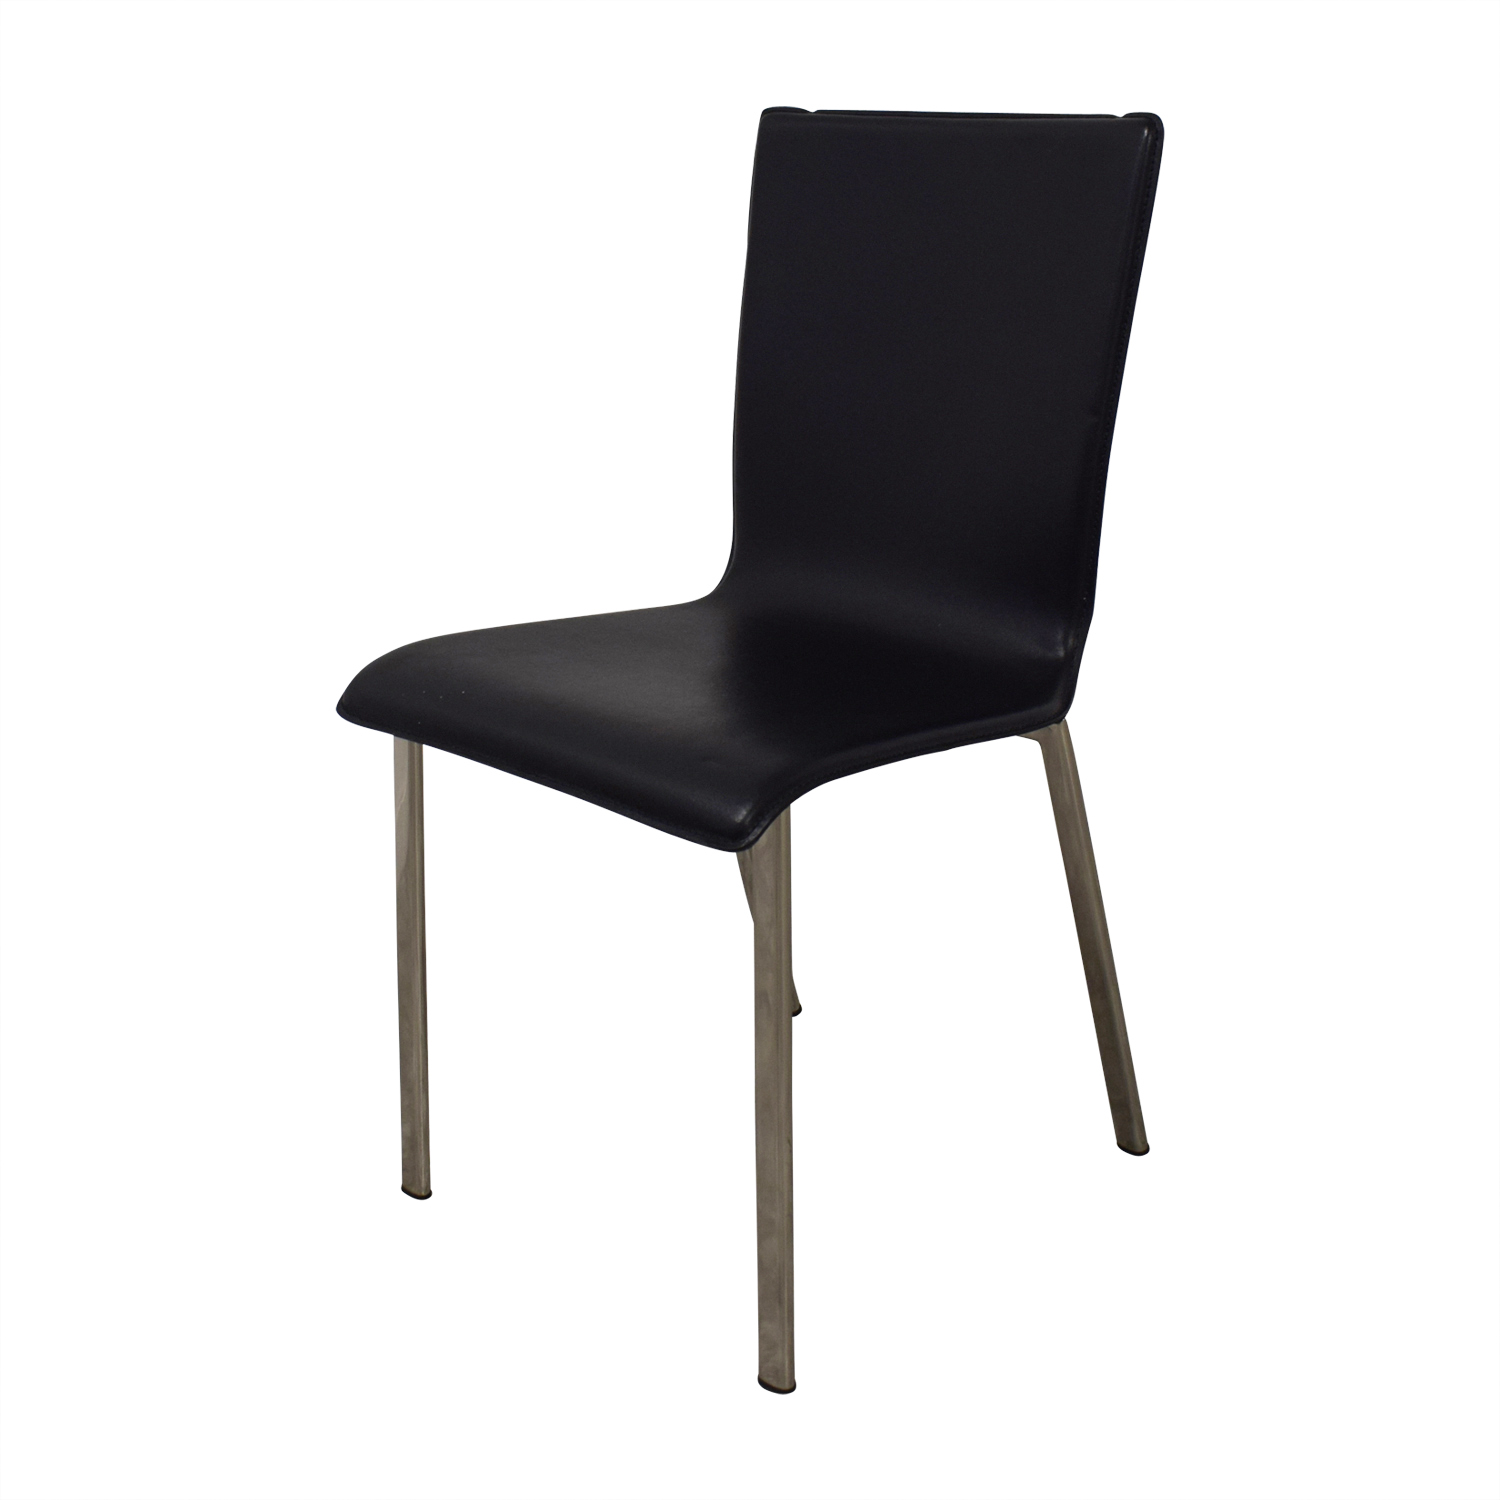 82 Off Ikea Ikea Black With Chrome Dining Chairs Chairs